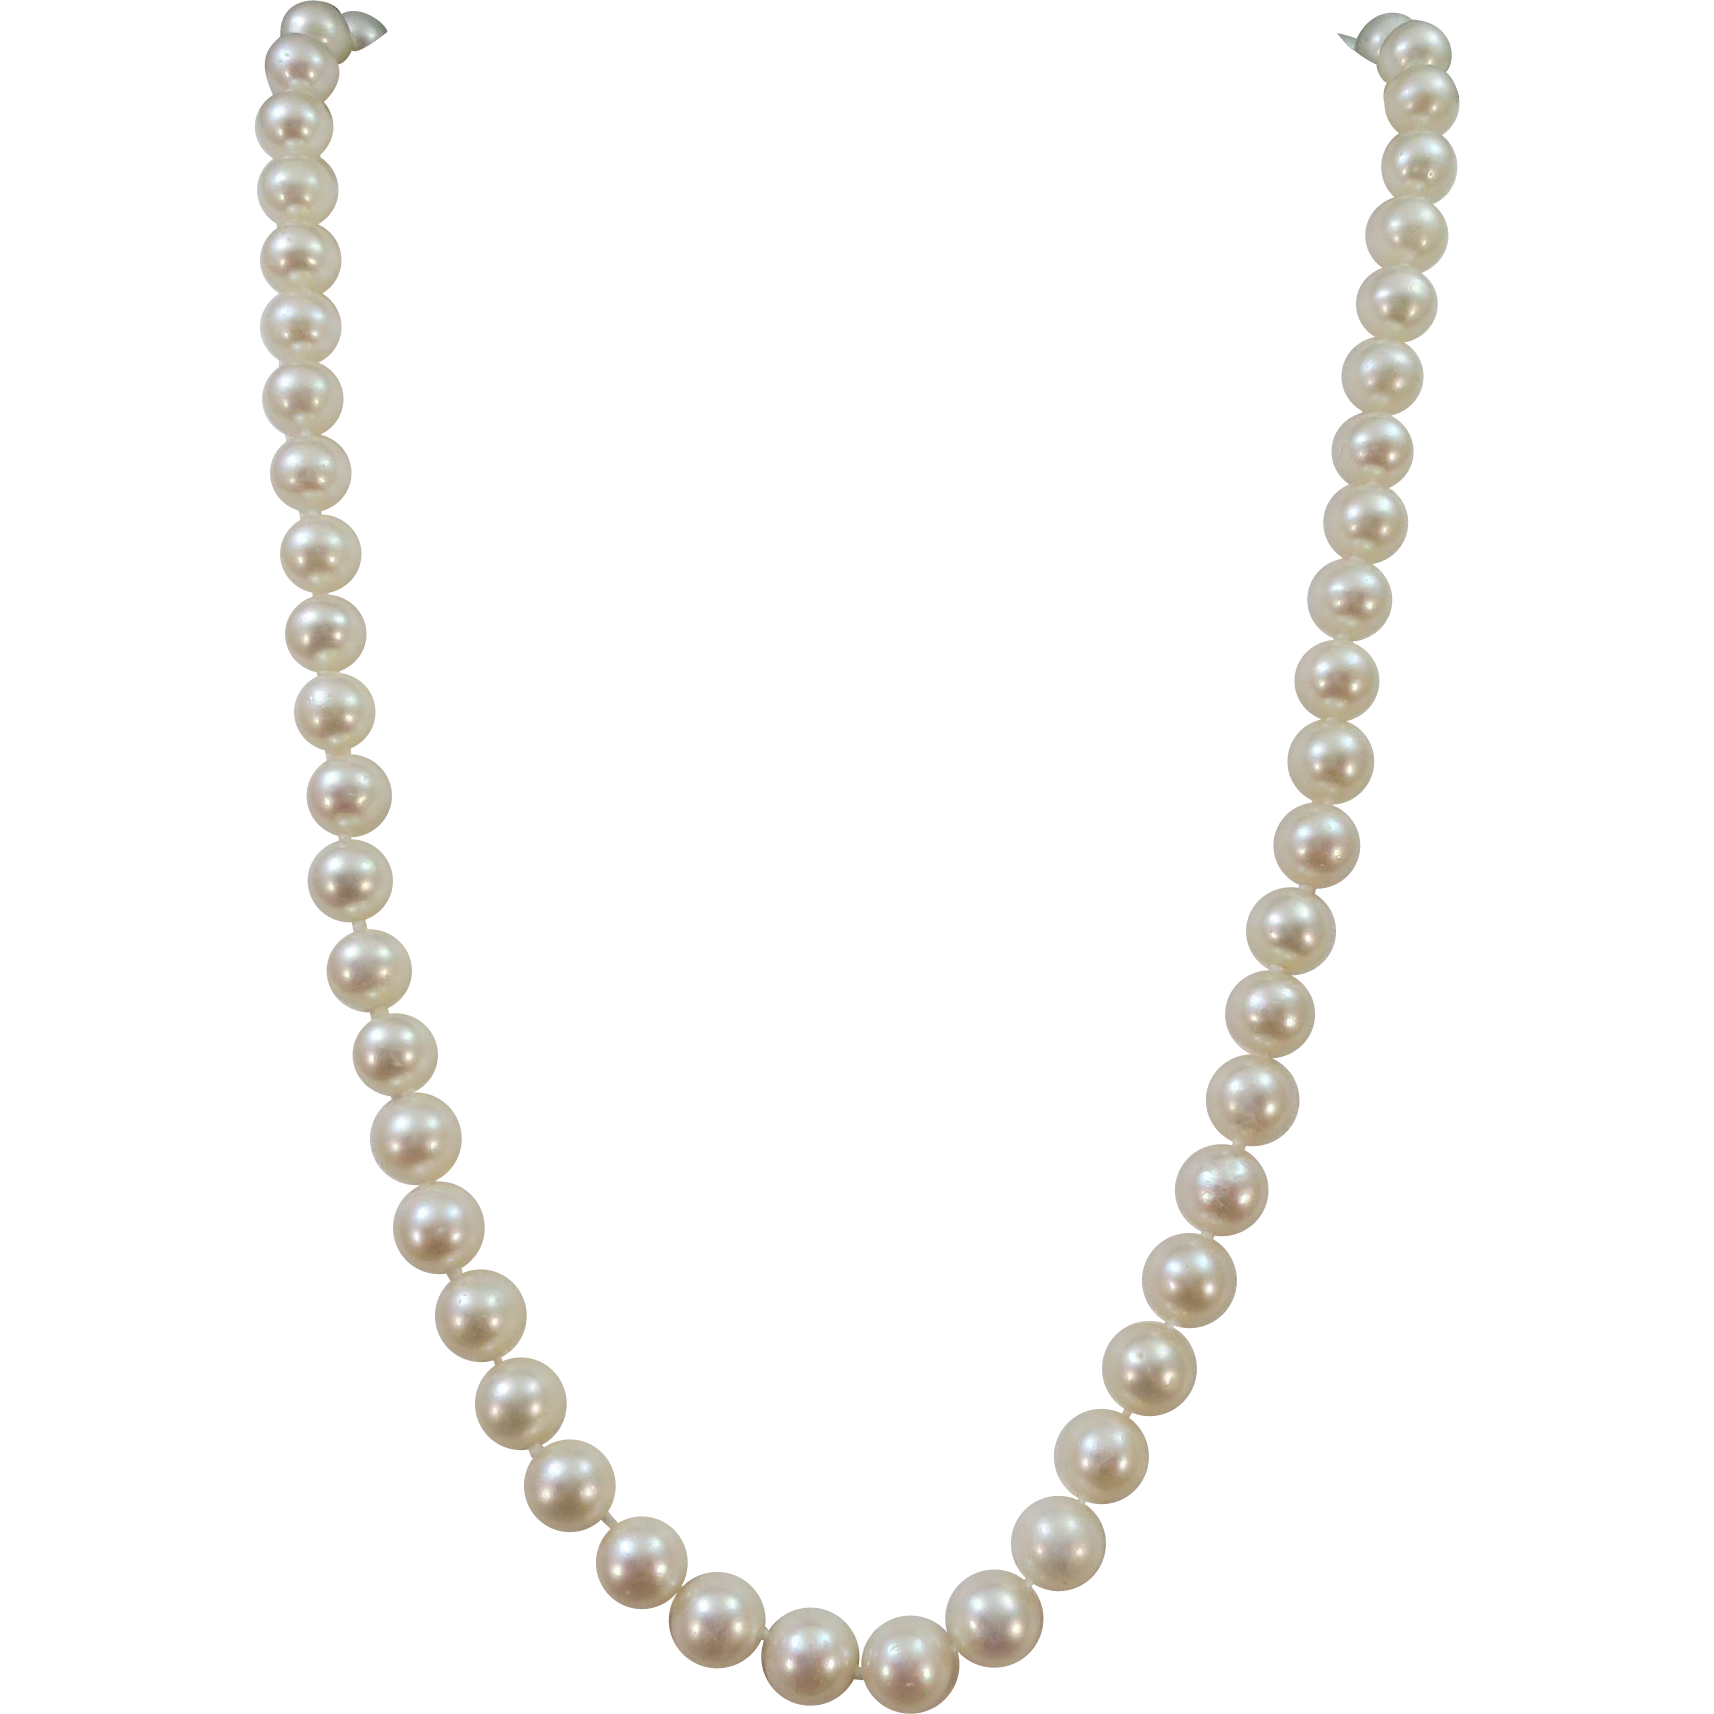 Pure pearl bead earring. Jewelry clipart string